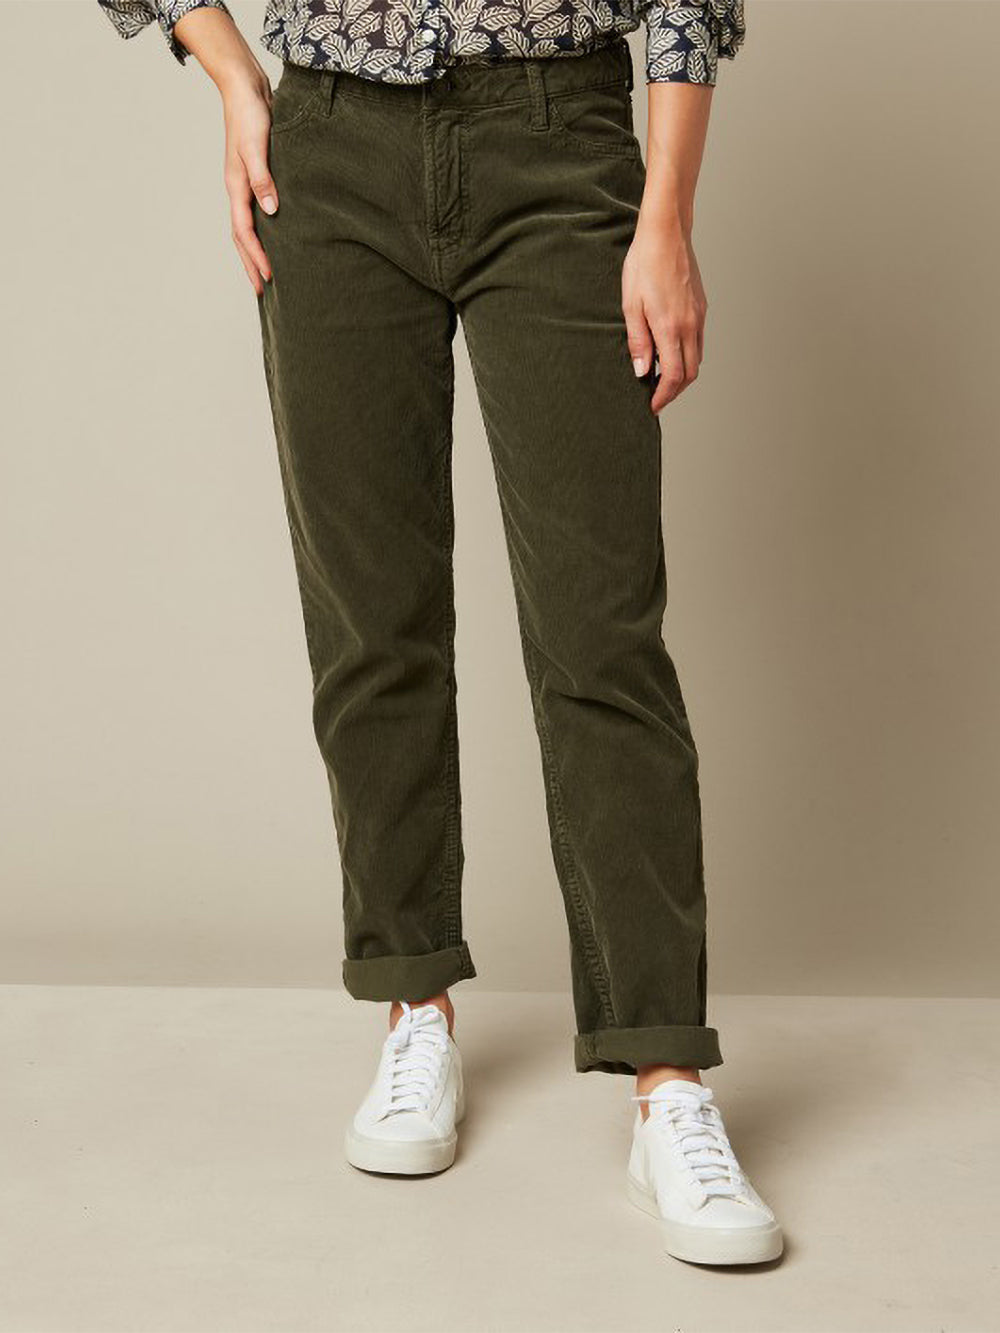 hartford pencil pant in army